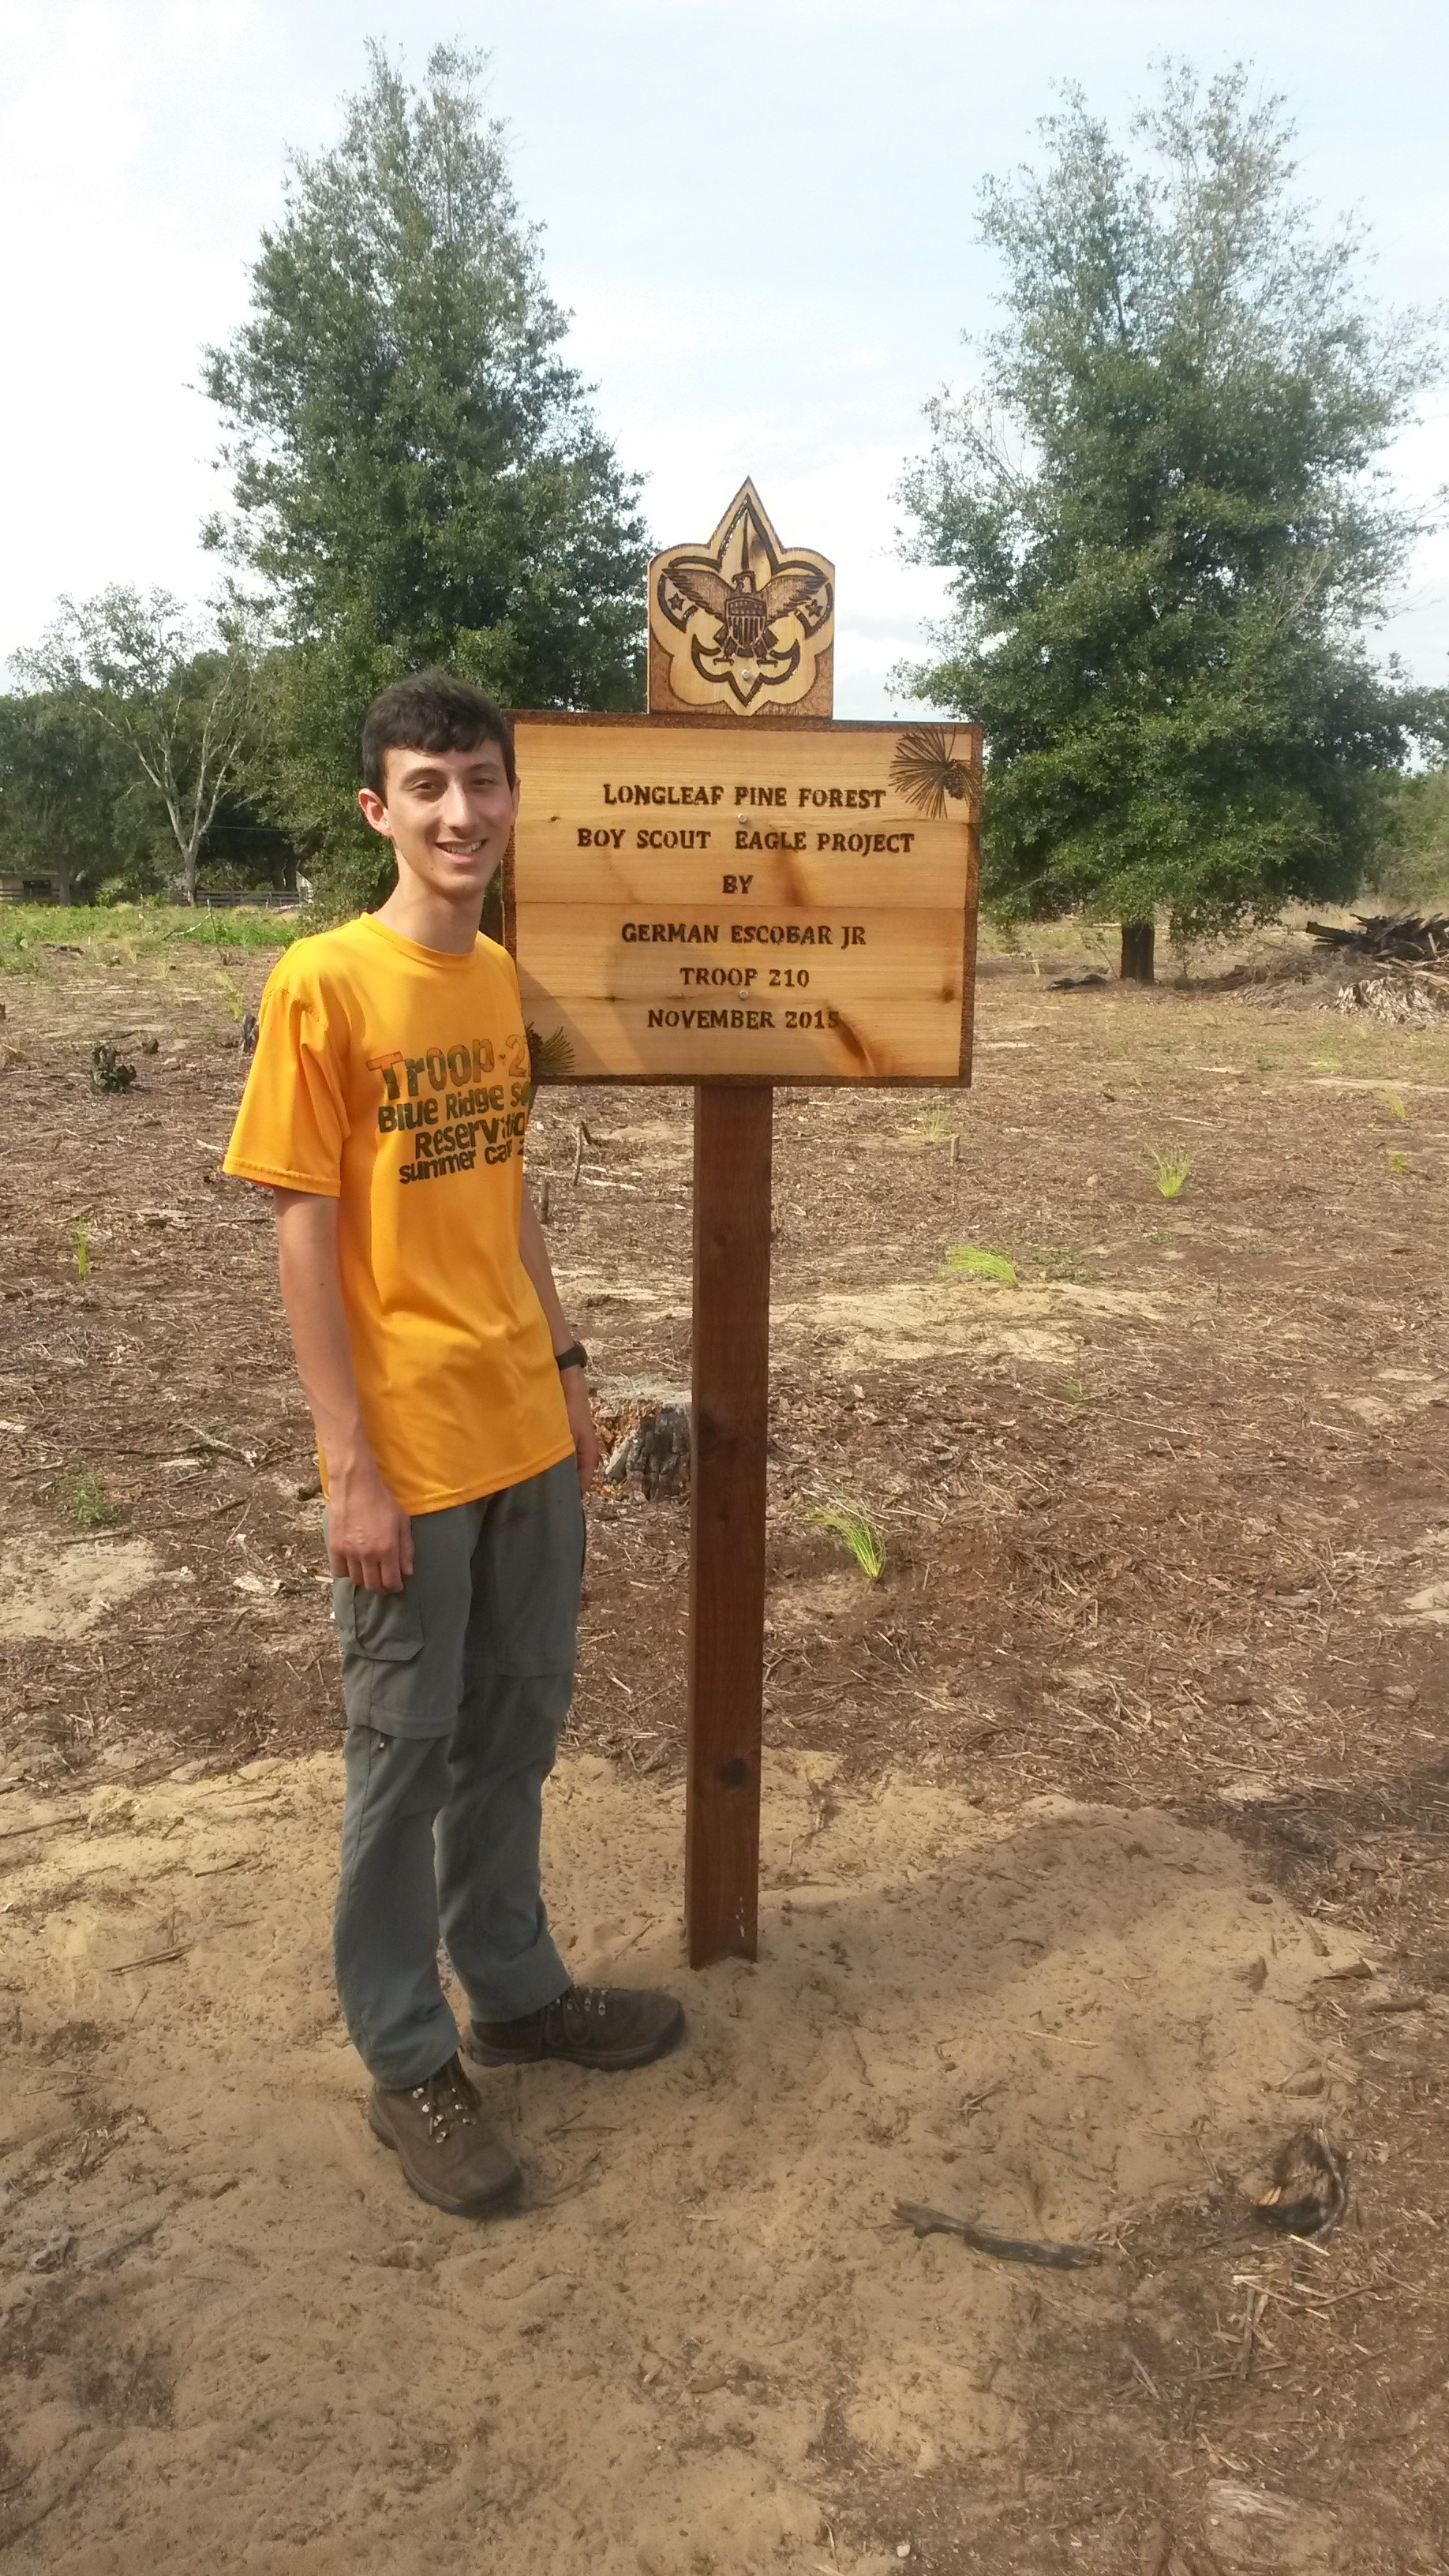 German Escobar and his completed Red Trail tree planting project